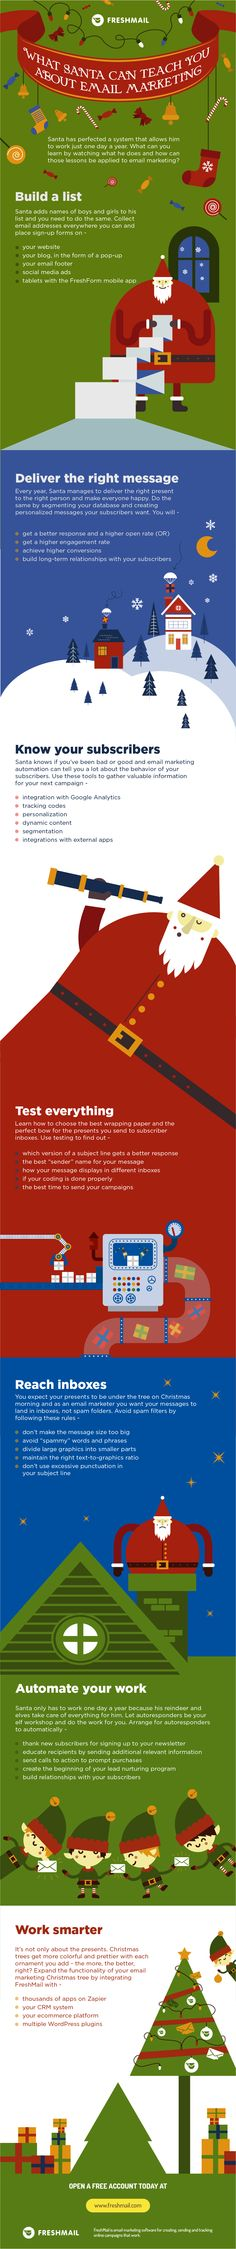 Email marketing can deliver tremendous results when it is done correctly. It is one of the most effective forms of online marketing and that isn't going to change anytime soon. Are your email campaigns performing as well as they could be? Visit: http://freshmail.com/blog/infographic-what-santa-can-teach-you-about-email-marketing/